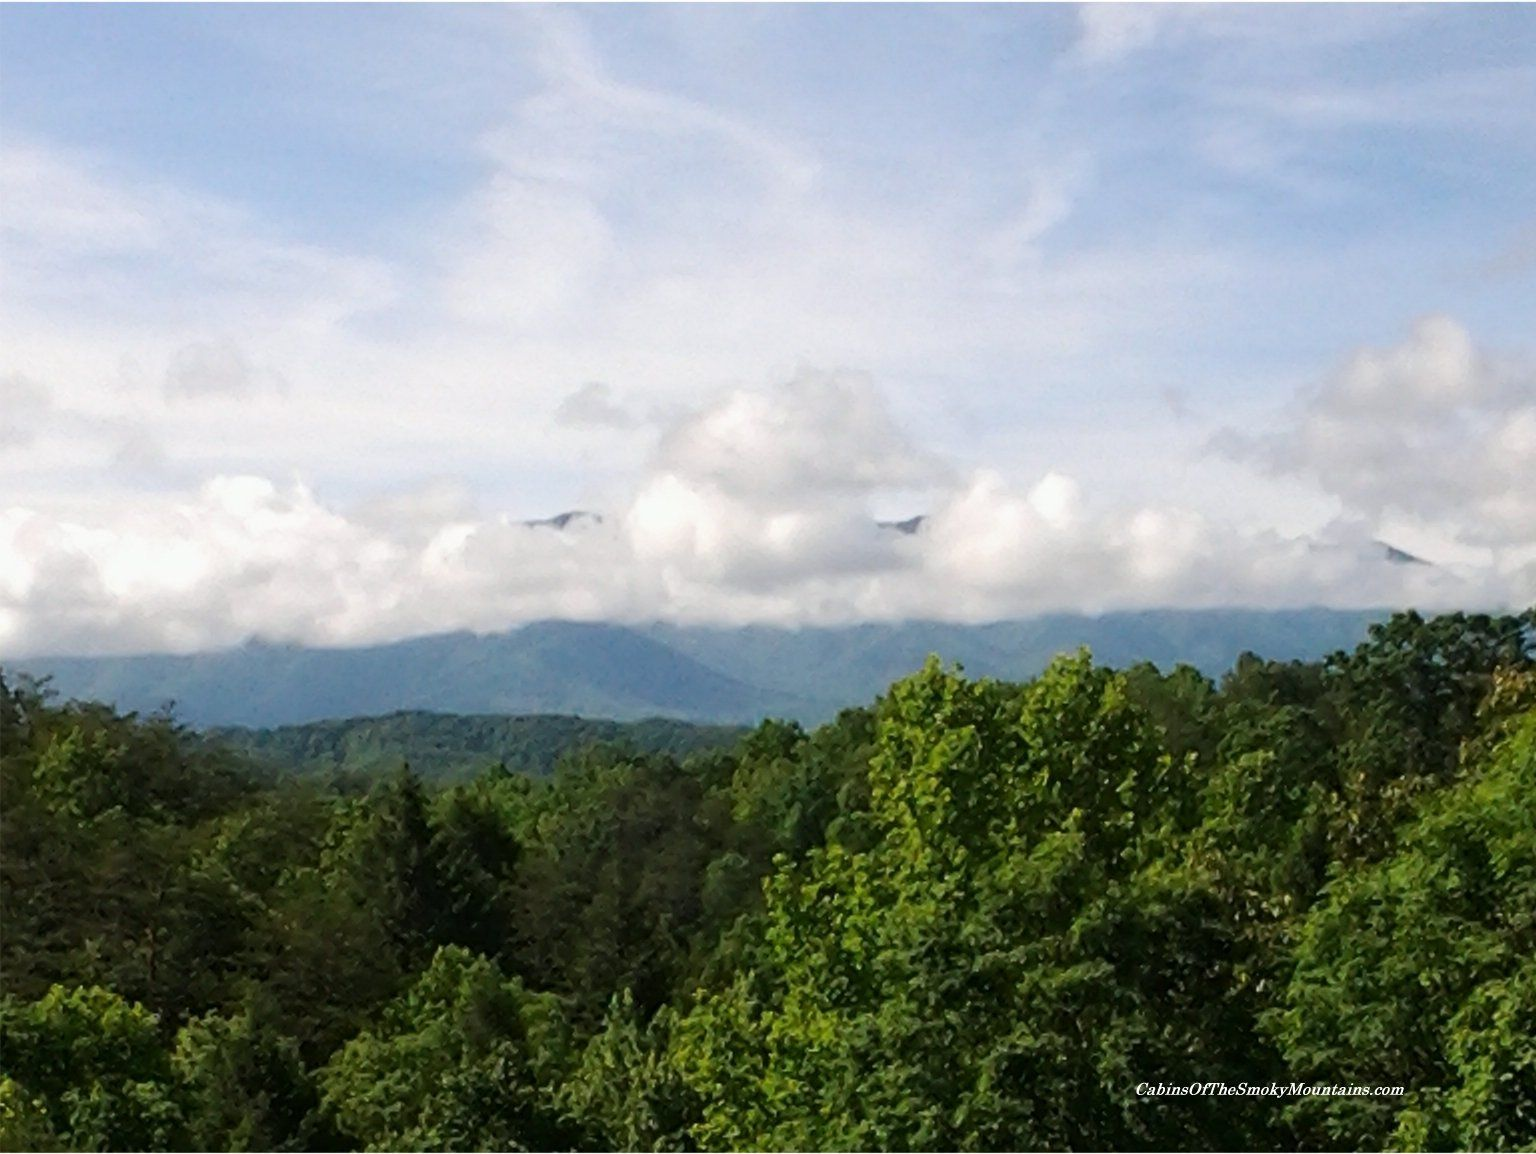 A May Day In The Smoky Mountains Nice View From A Cabin Called Knotty But Nice Close To Pigeon Forge Mountains Behind Th Smoky Mountains Mountains Nice View